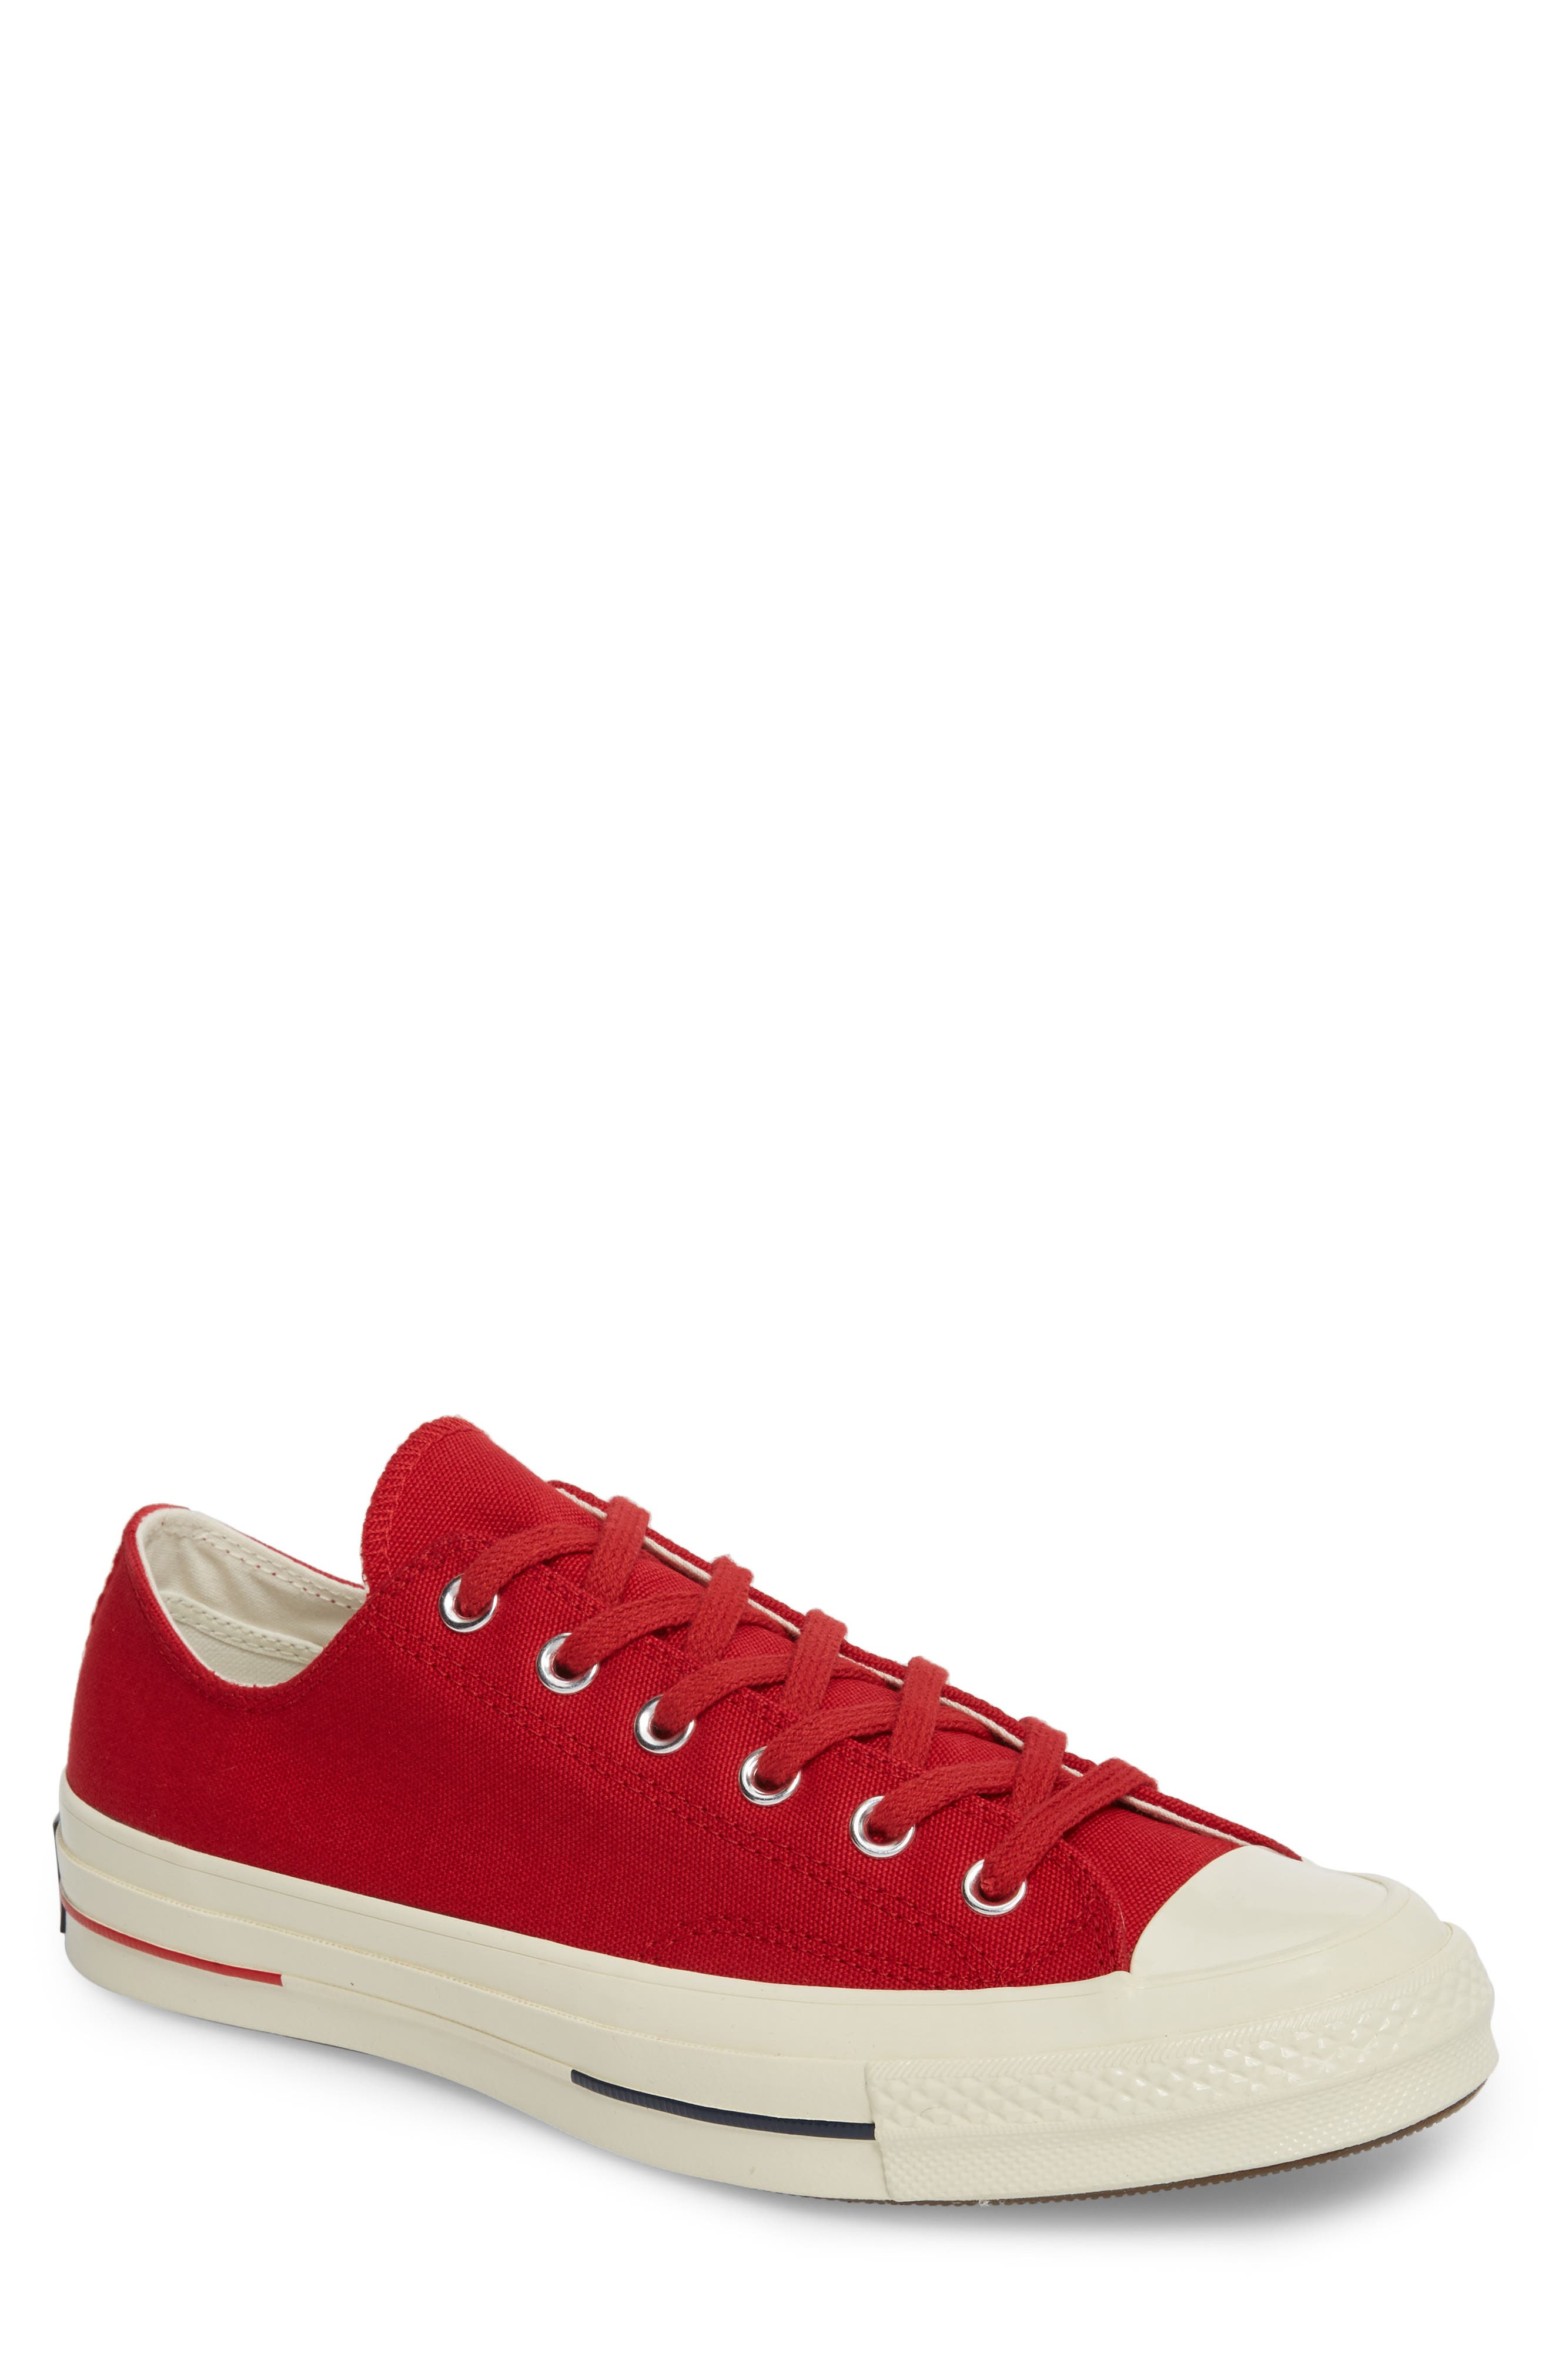 Chuck Taylor<sup>®</sup> All Star<sup>®</sup> '70s Heritage Low Top Sneaker,                             Main thumbnail 1, color,                             600